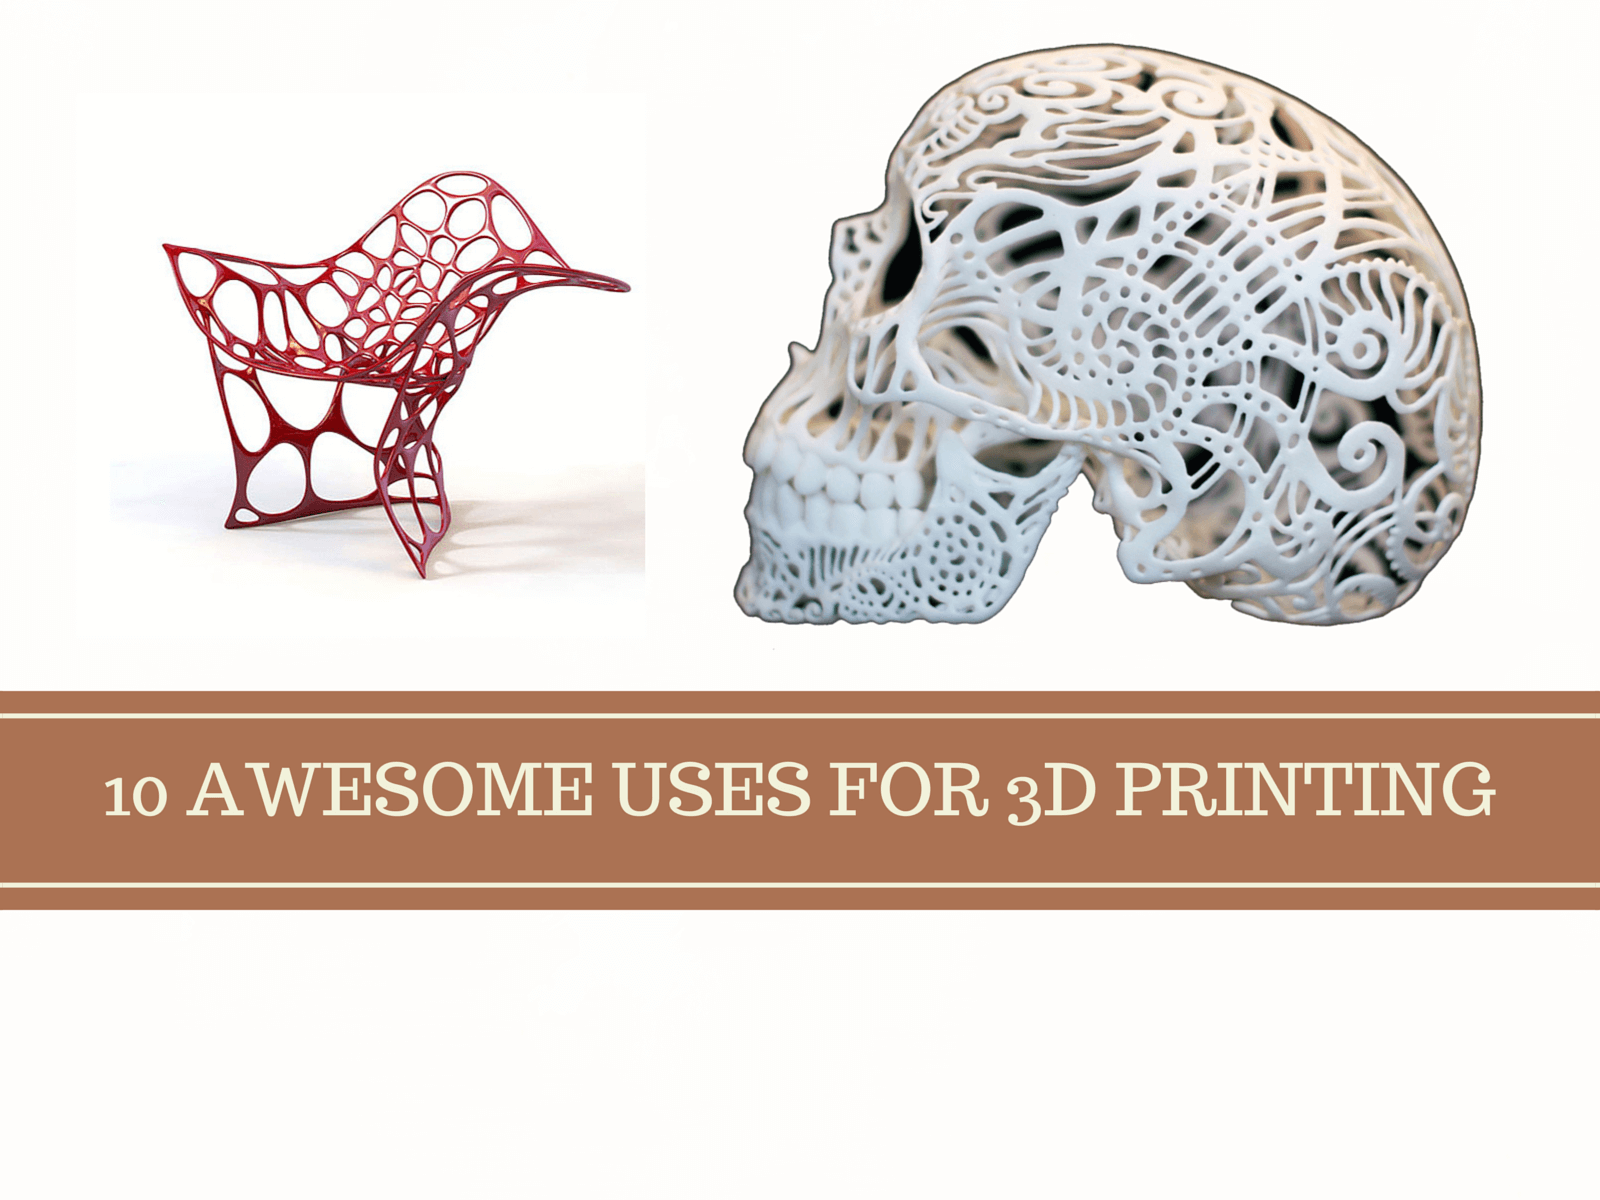 Wedding Gifts For Sister And Brother In Law In India : 10 AWESOME USES FOR 3D PRINTING - Augrav.com